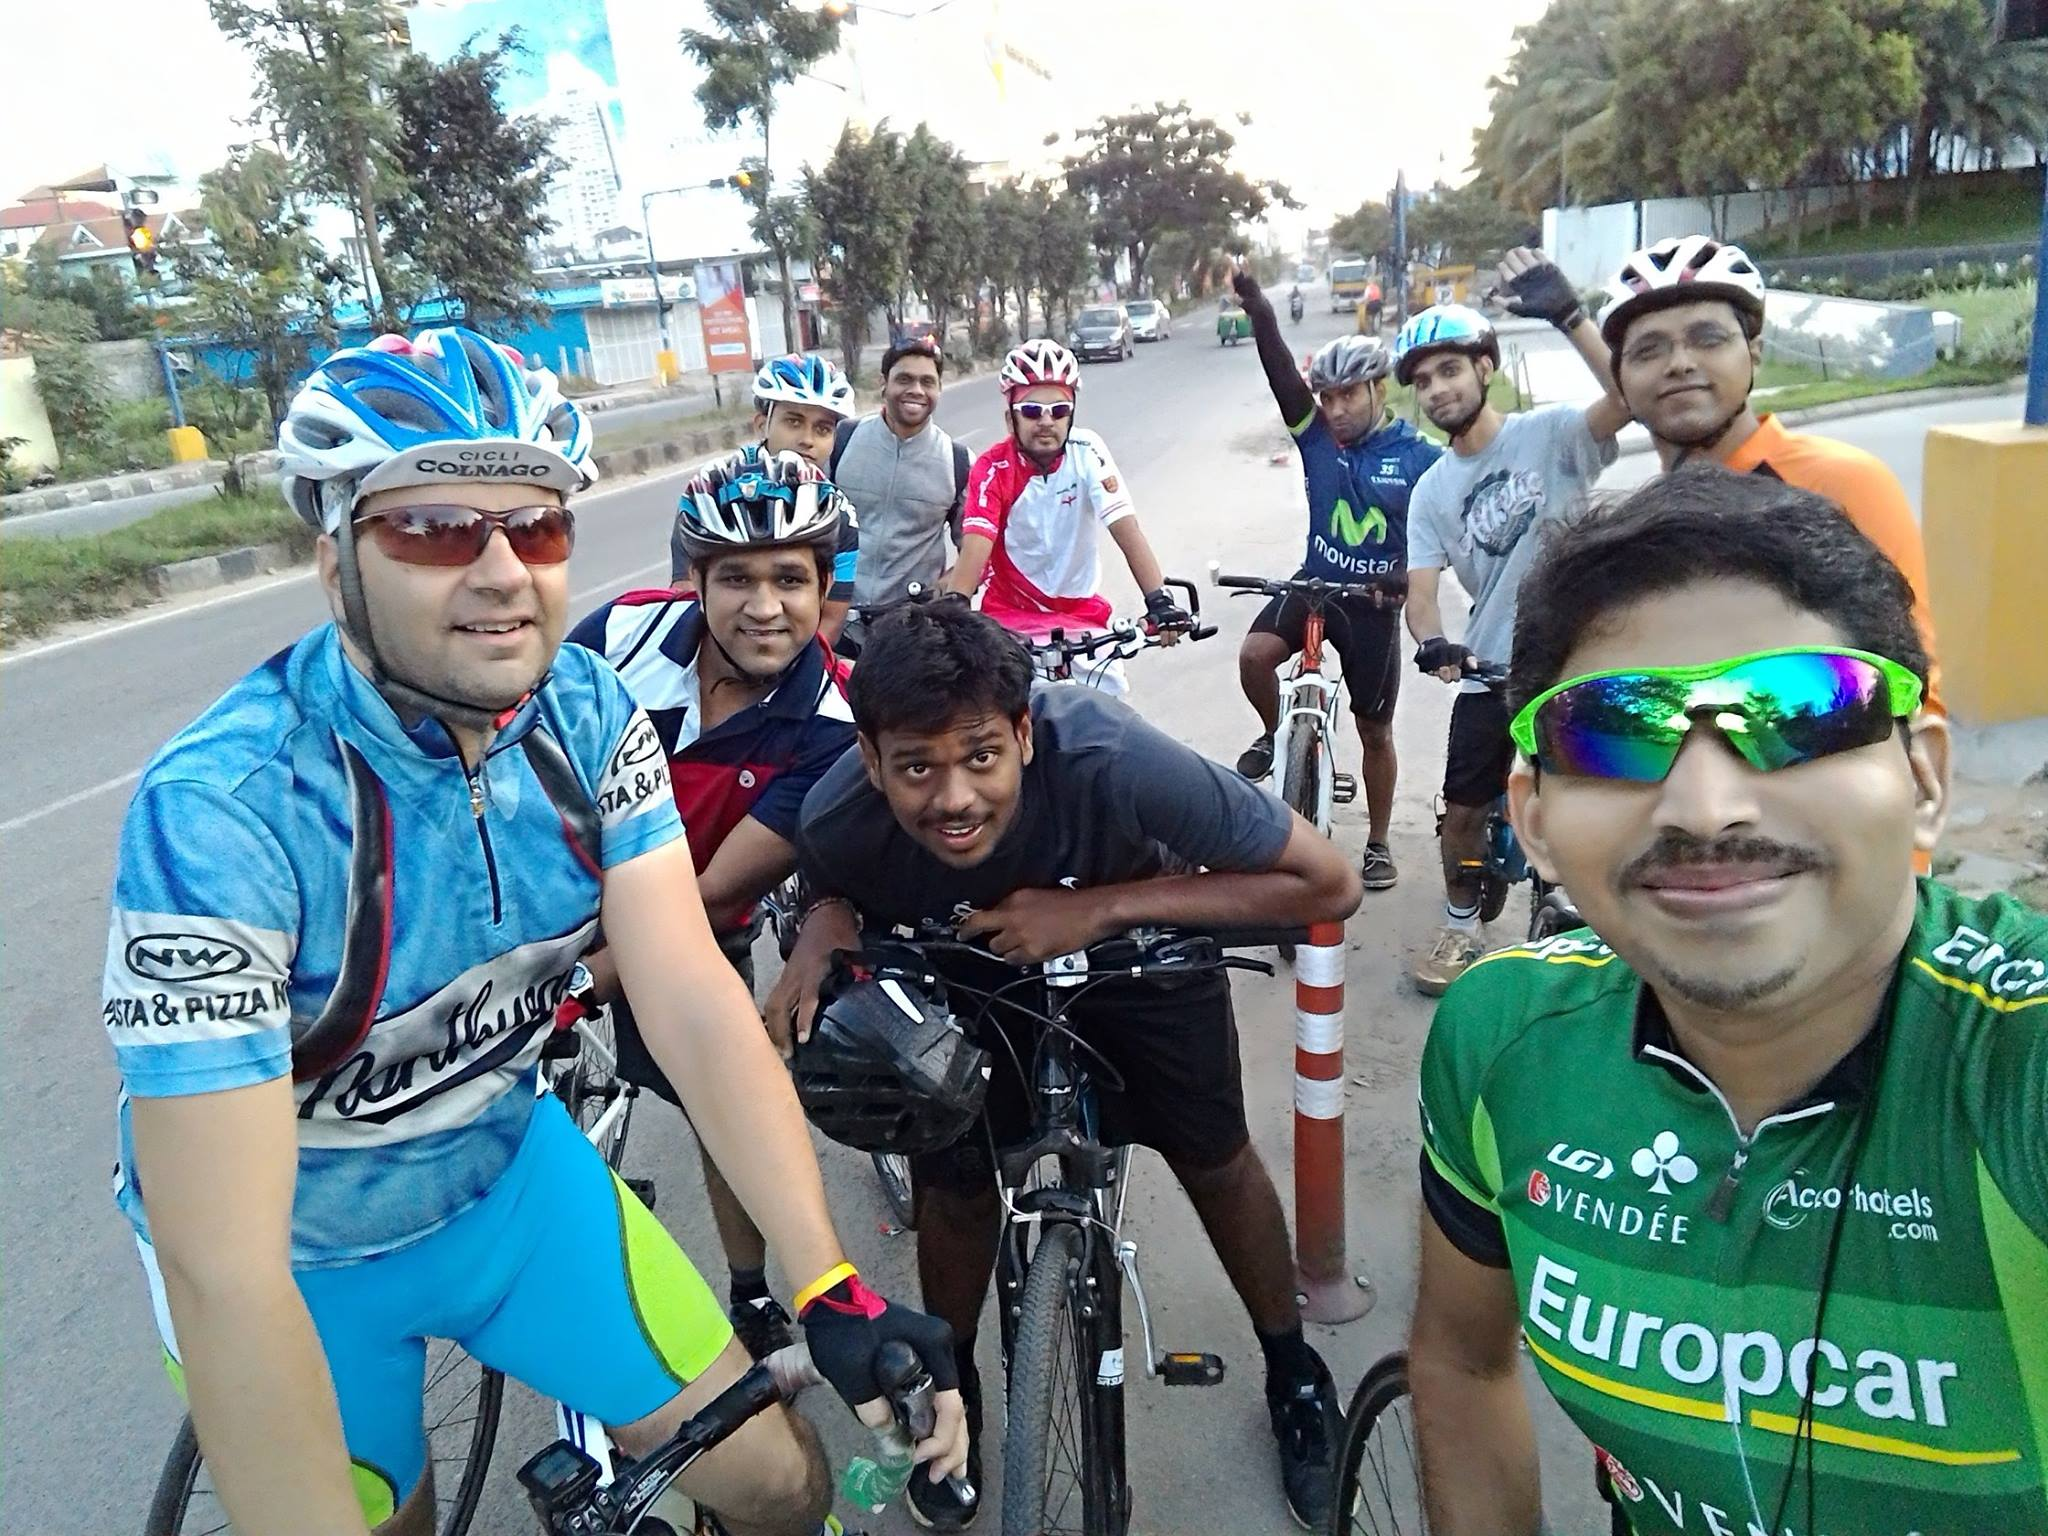 Biju Kunnappada with his cycling group in Bengaluru - Bangalore Roadsters on free weekend cycling ride promoting and encouraging cycling